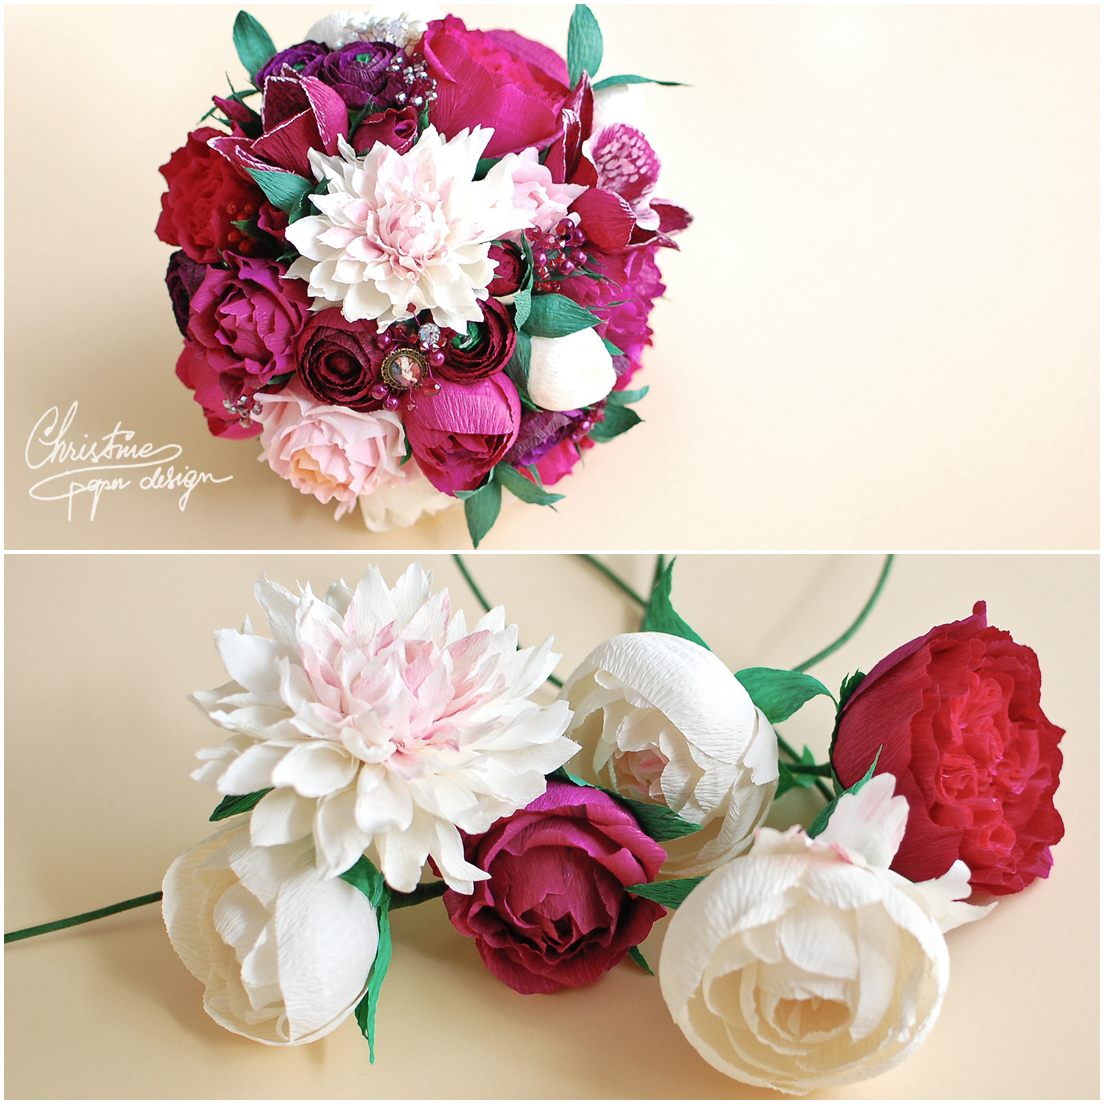 2Christine paper design - red alternative bridal bouquet